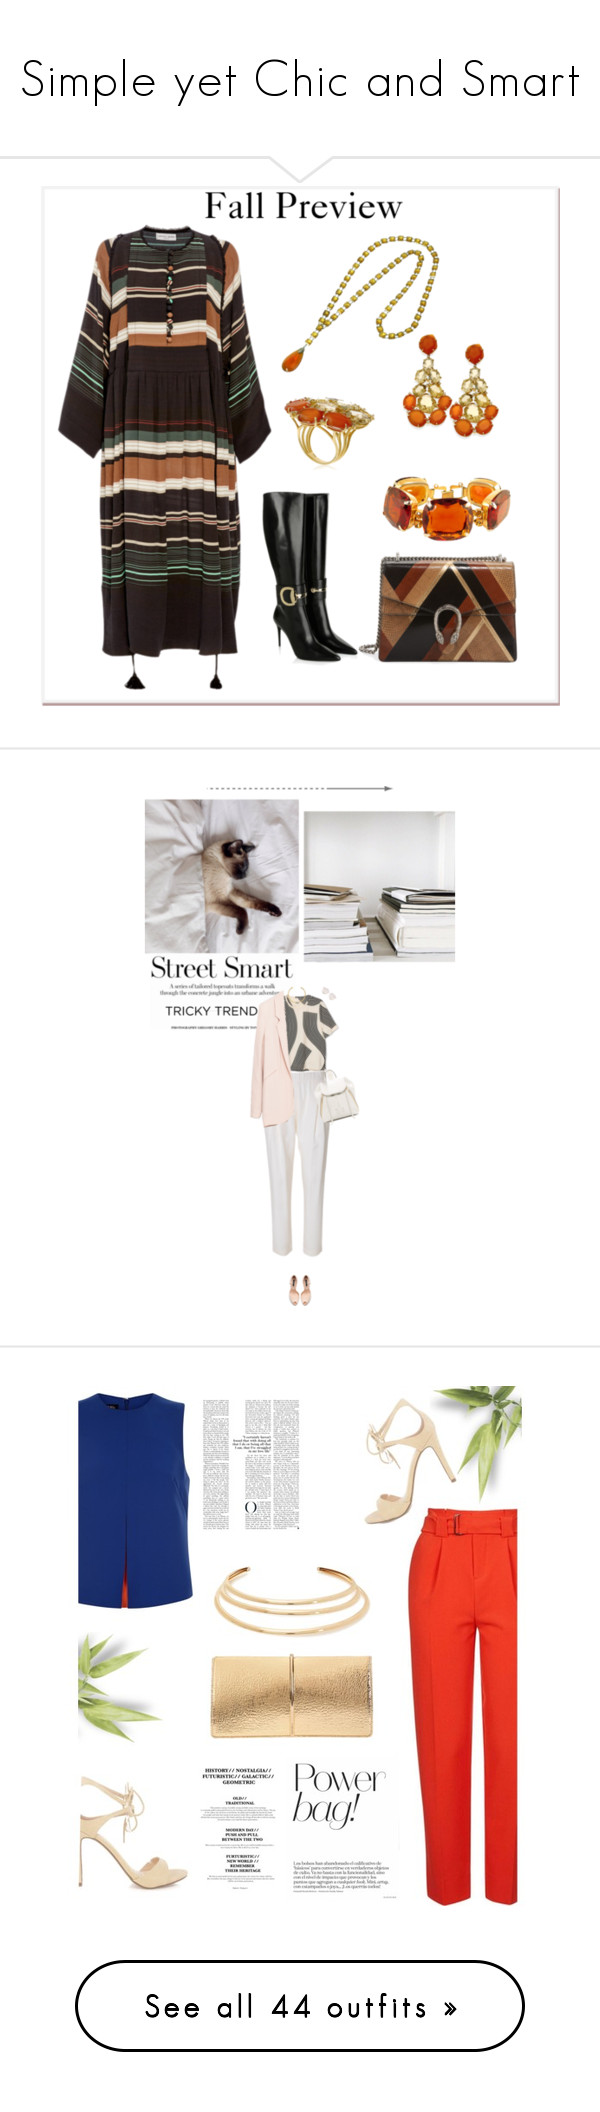 """""""Simple yet Chic and Smart"""" by fashionholicwriter ❤ liked on Polyvore featuring Gucci, Apiece Apart, 3.1 Phillip Lim, Zara, OBEY Clothing, Rebecca Minkoff, Christian Dior, Topshop, Jaeger and Nina Ricci"""